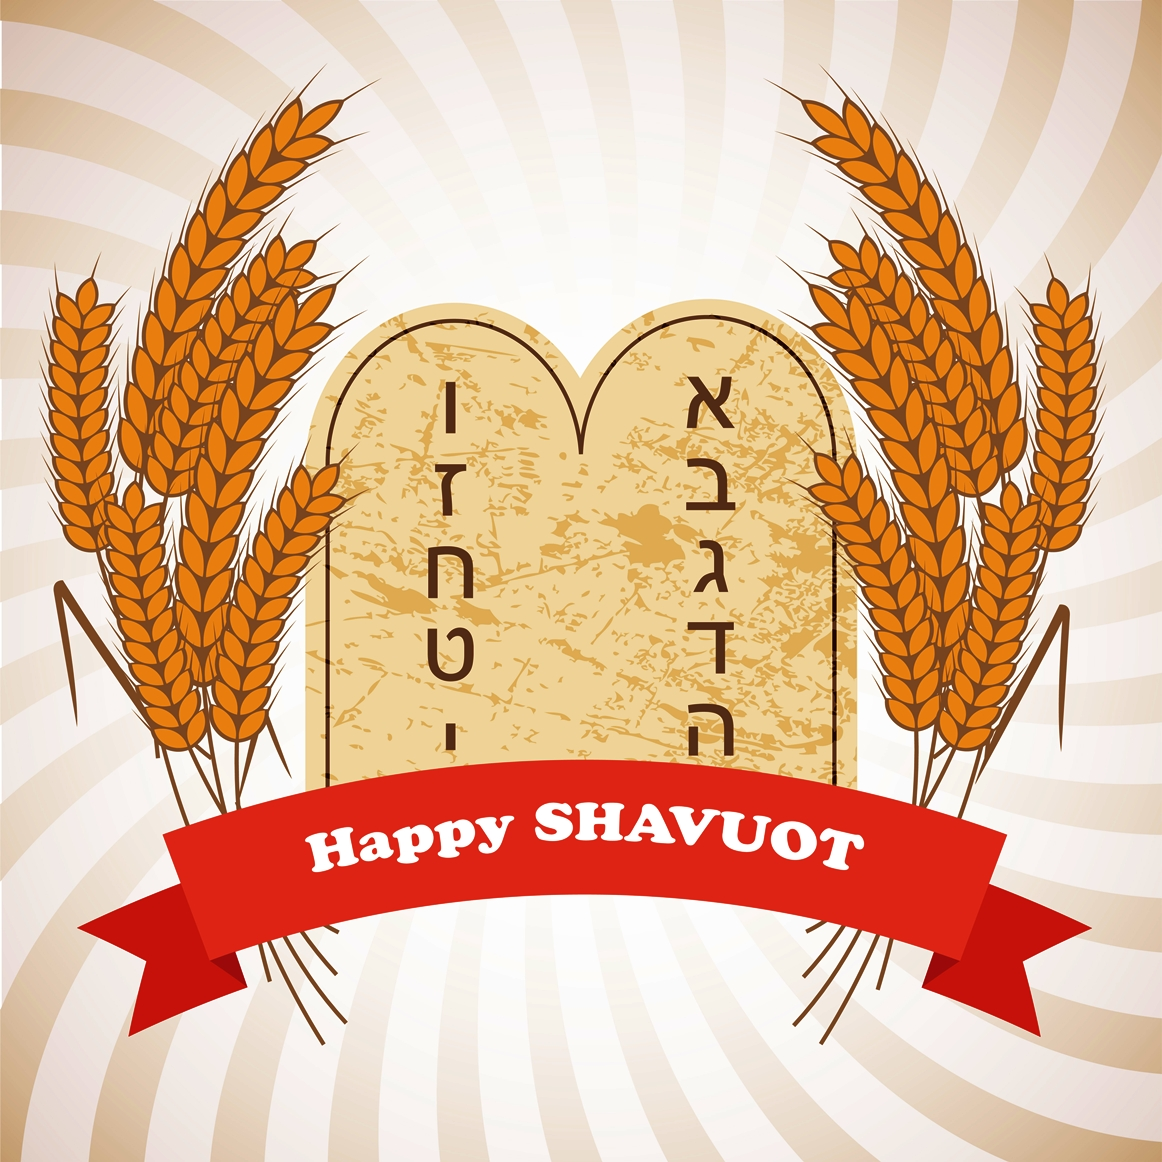 Shavuot beyond symbols beit hillel in addition to the agricultural and ritual reasons for shavuot we traditionally associate shavuot with the giving of the torah buycottarizona Choice Image